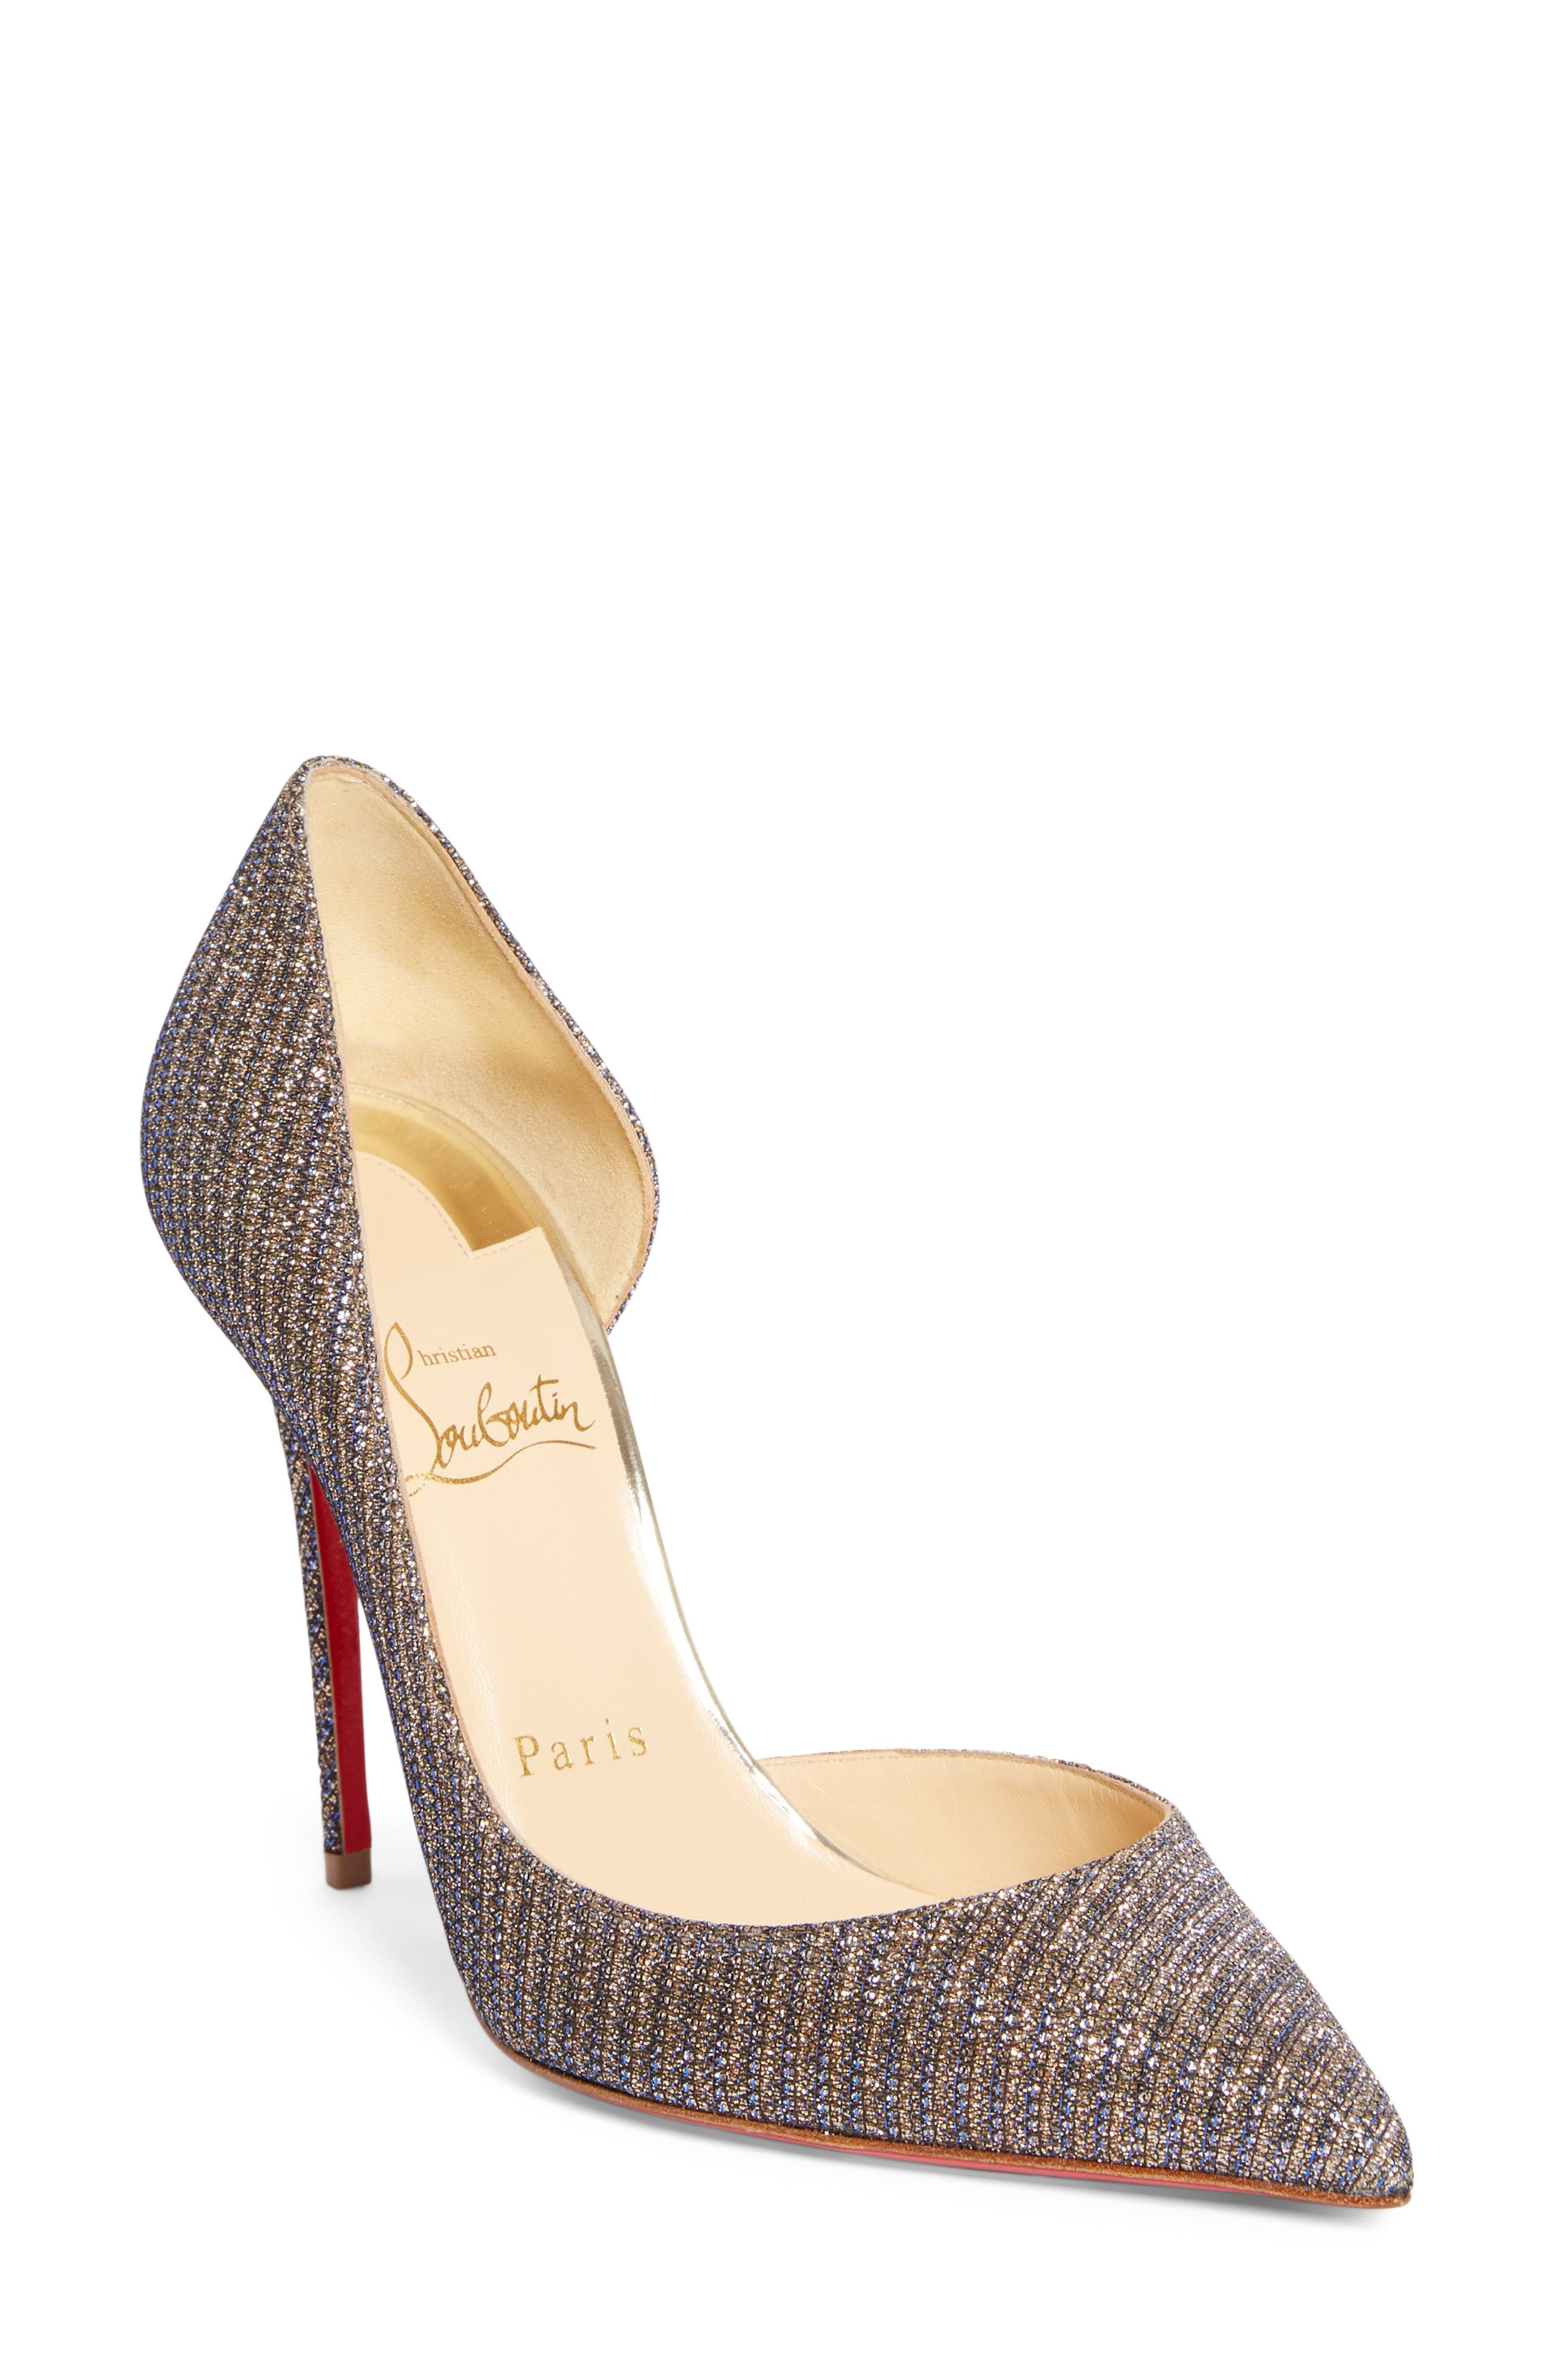 christian louboutin shoes prices